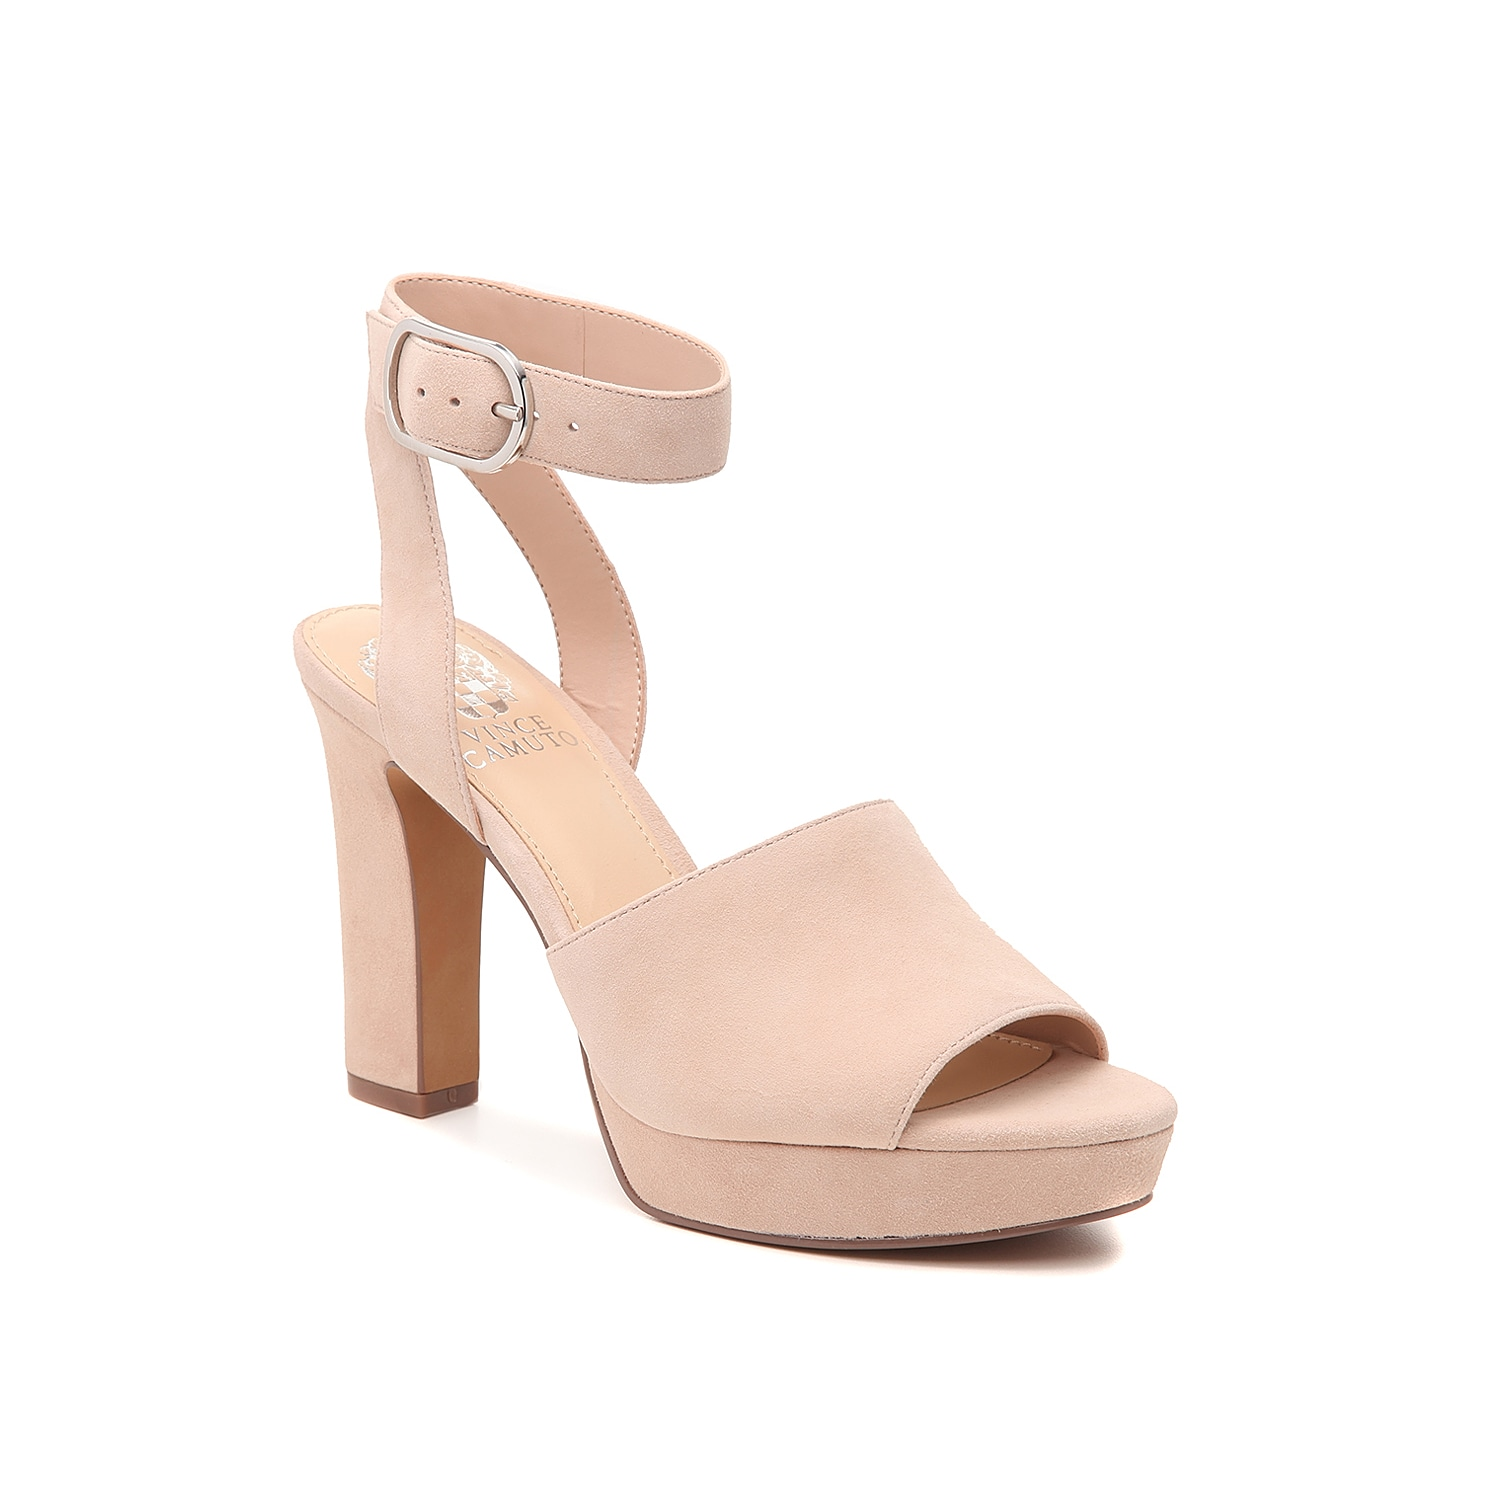 Elevate your entire look with the Sophette platform sandal from Vince Camuto. This two-piece, suede pair is fashioned with a platform detail and secured ankle strap for confident steps!